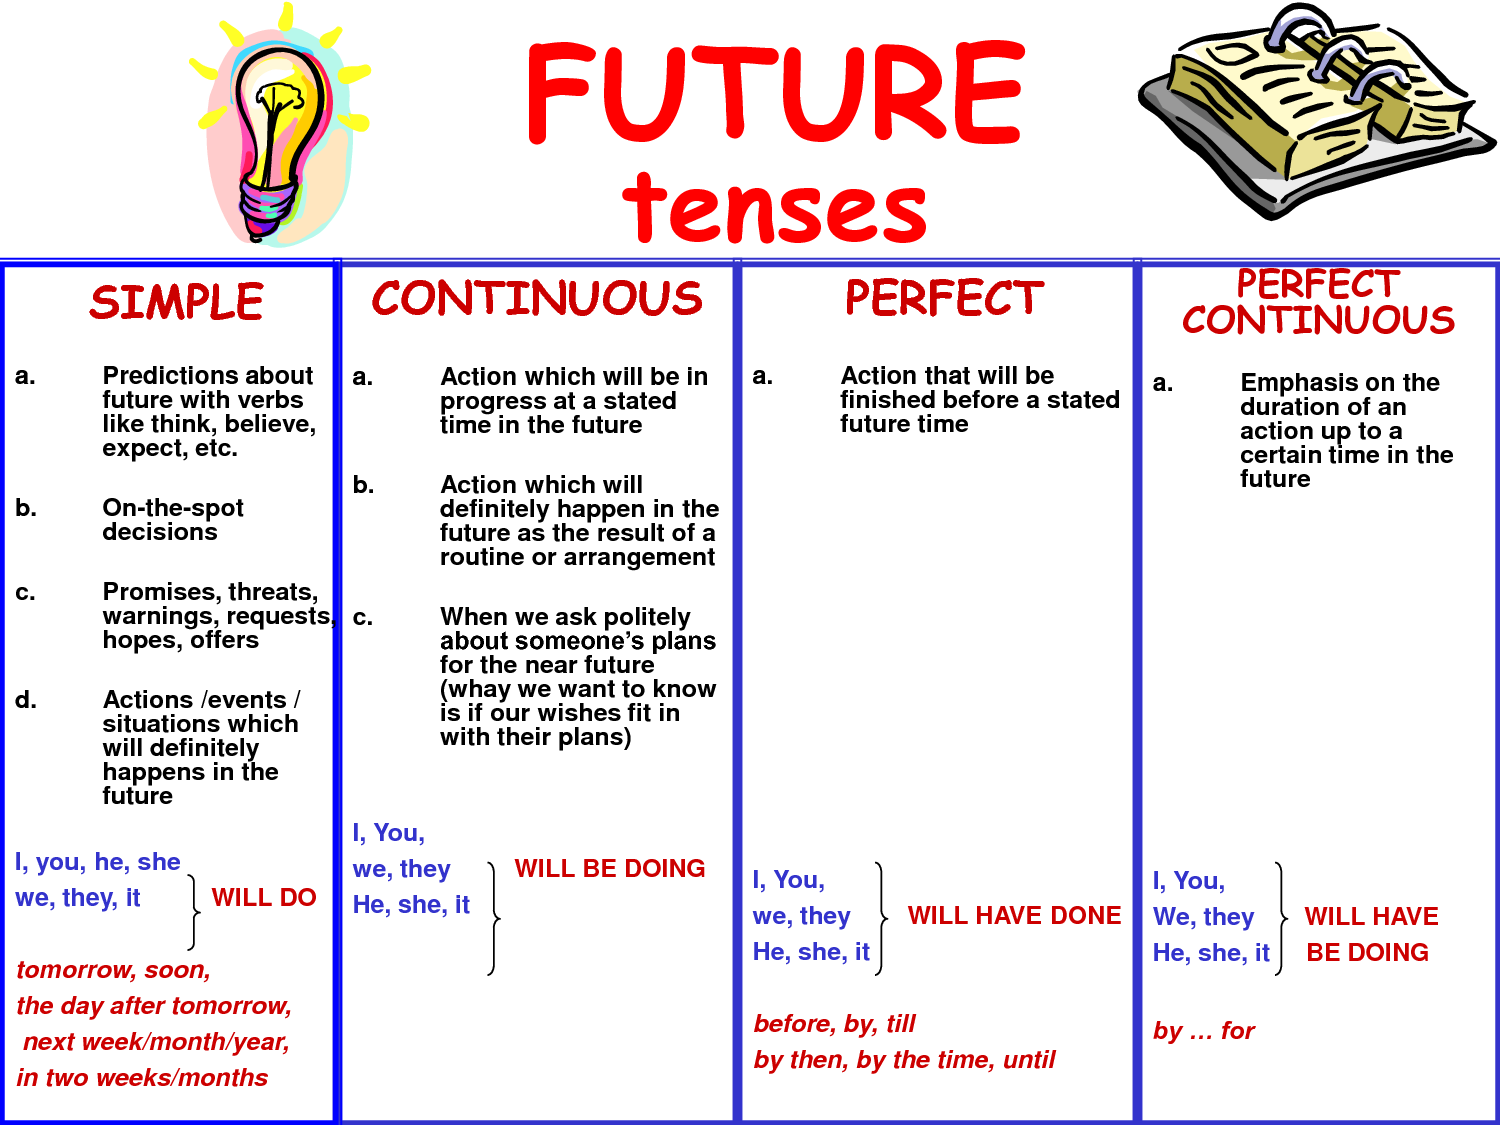 FUTURE TENSES OVERVIEW